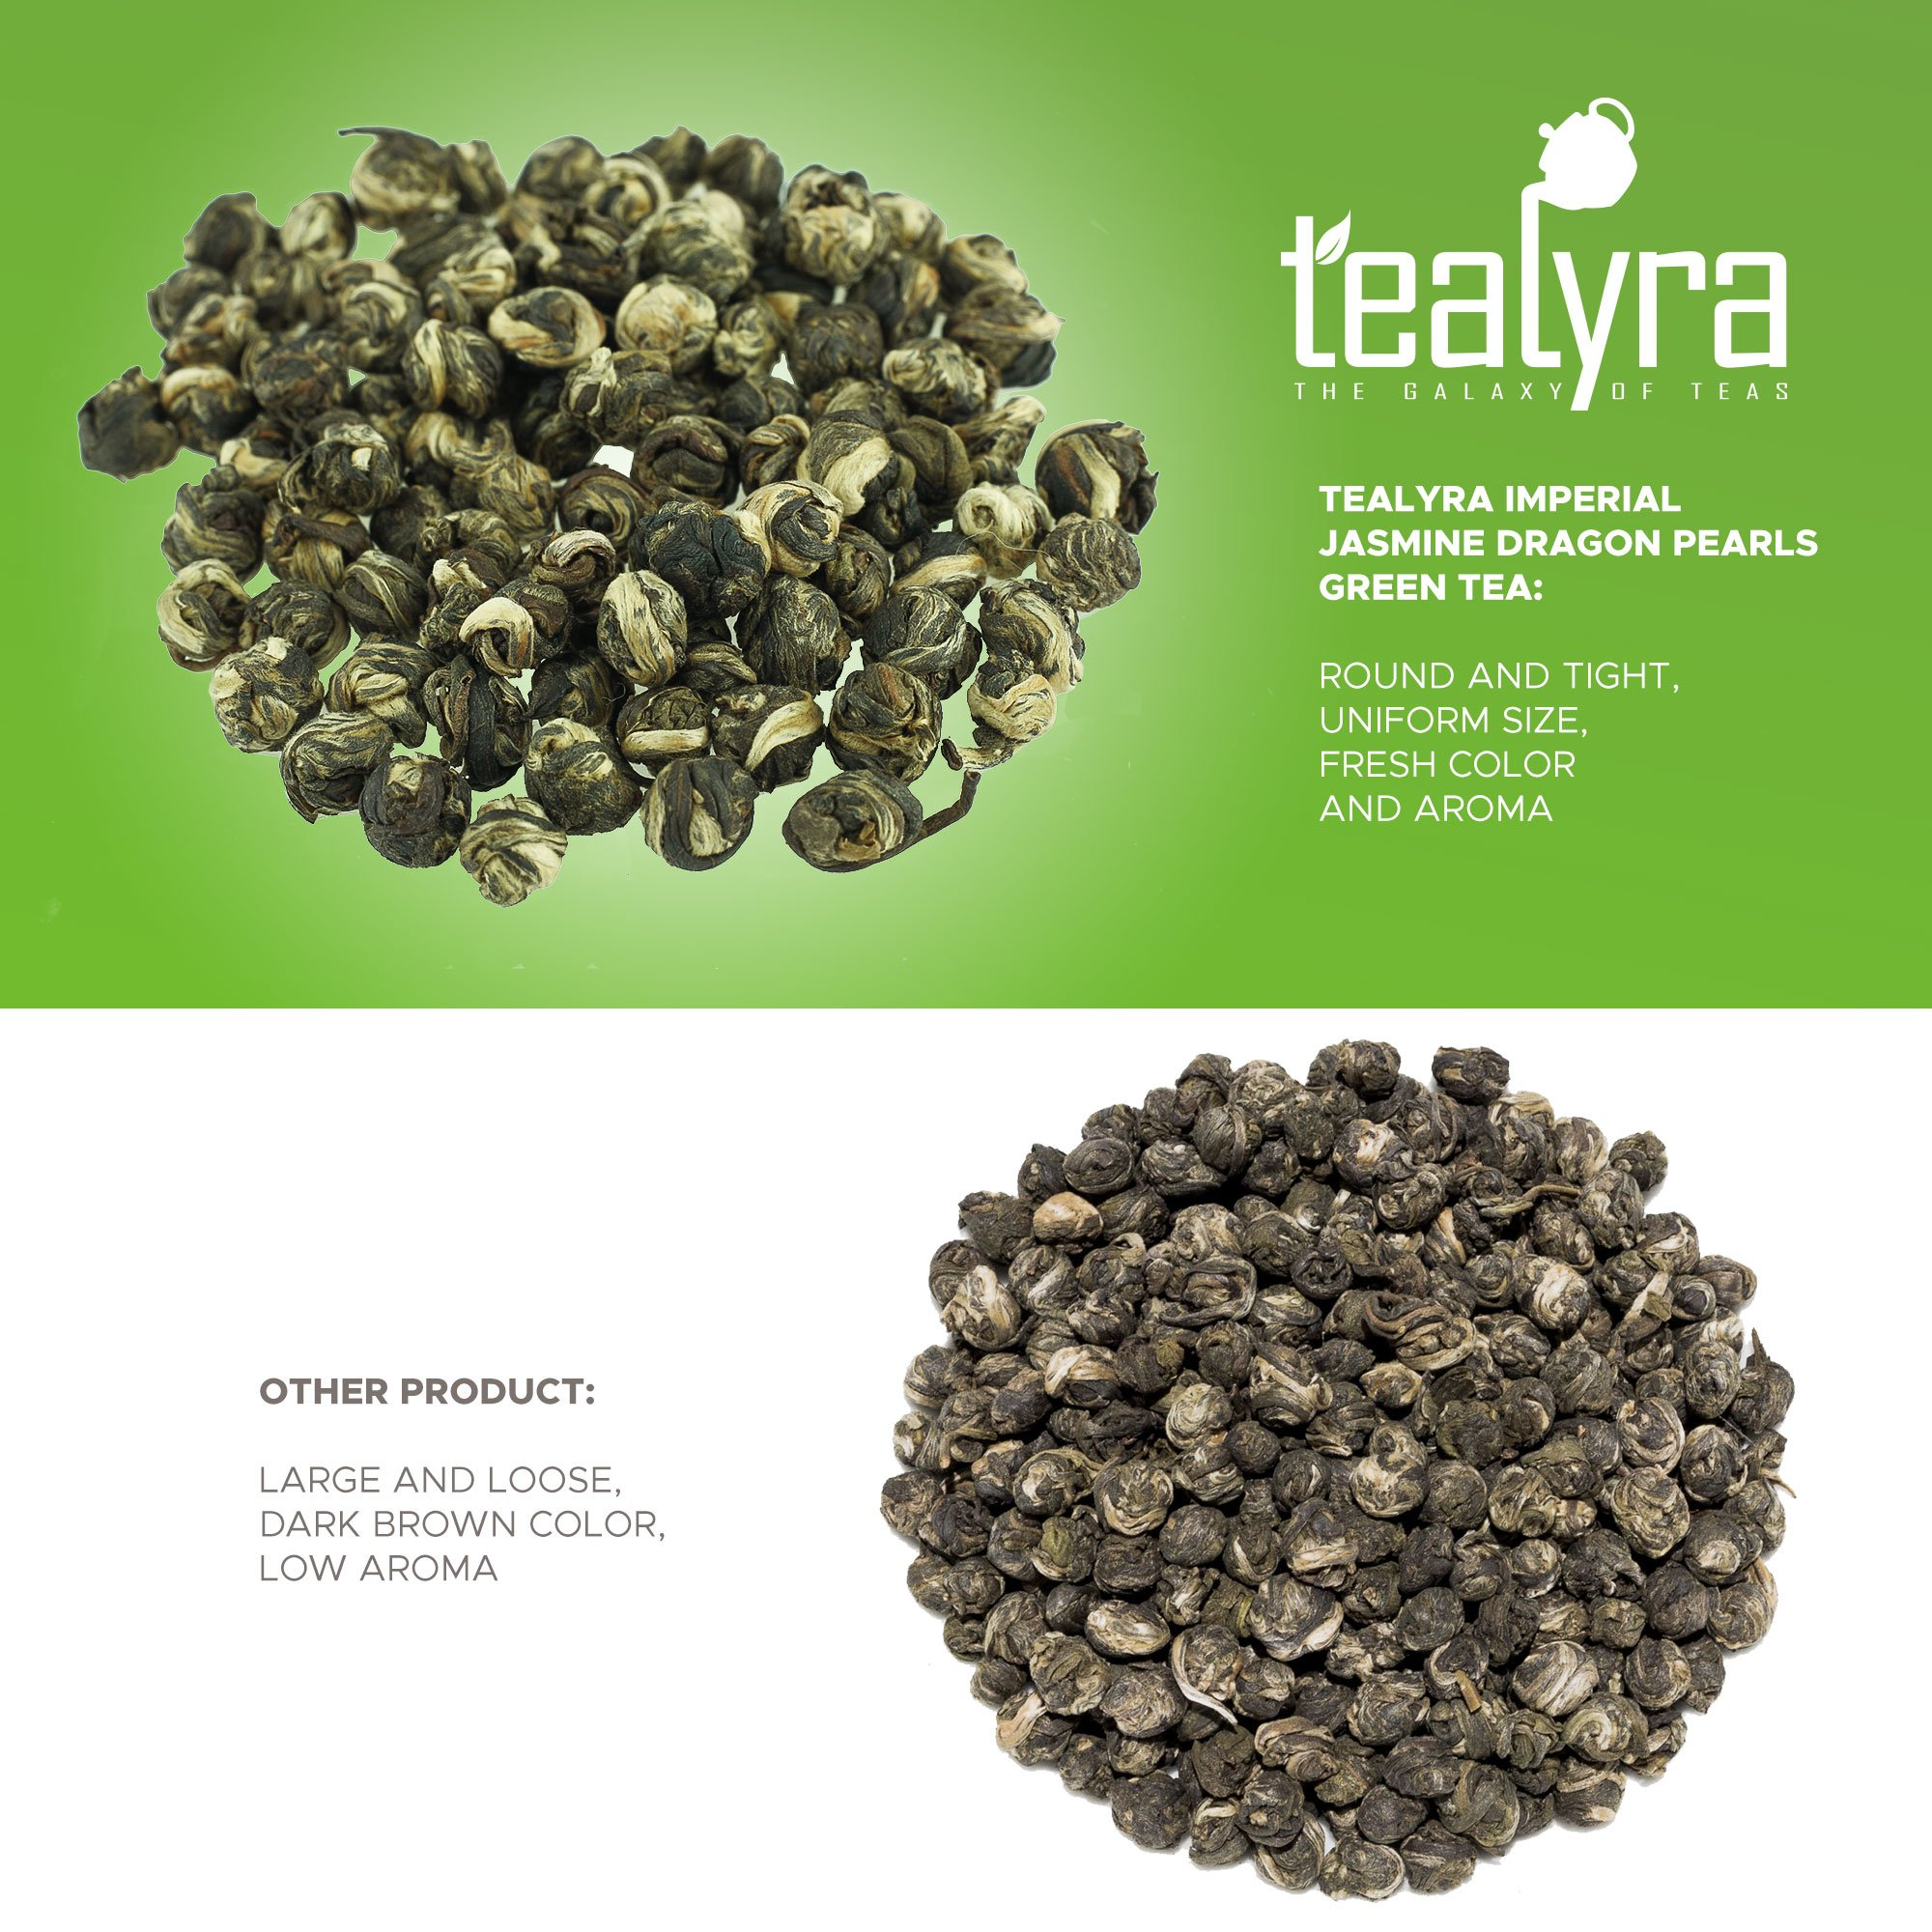 Tealyra - Imperial Jasmine Dragon Pearls - Loose Leaf Green Tea - Jasmine Green Tea with Pleasant Aroma and Tonic Effect - 113g (4-ounce) by Tealyra (Image #1)